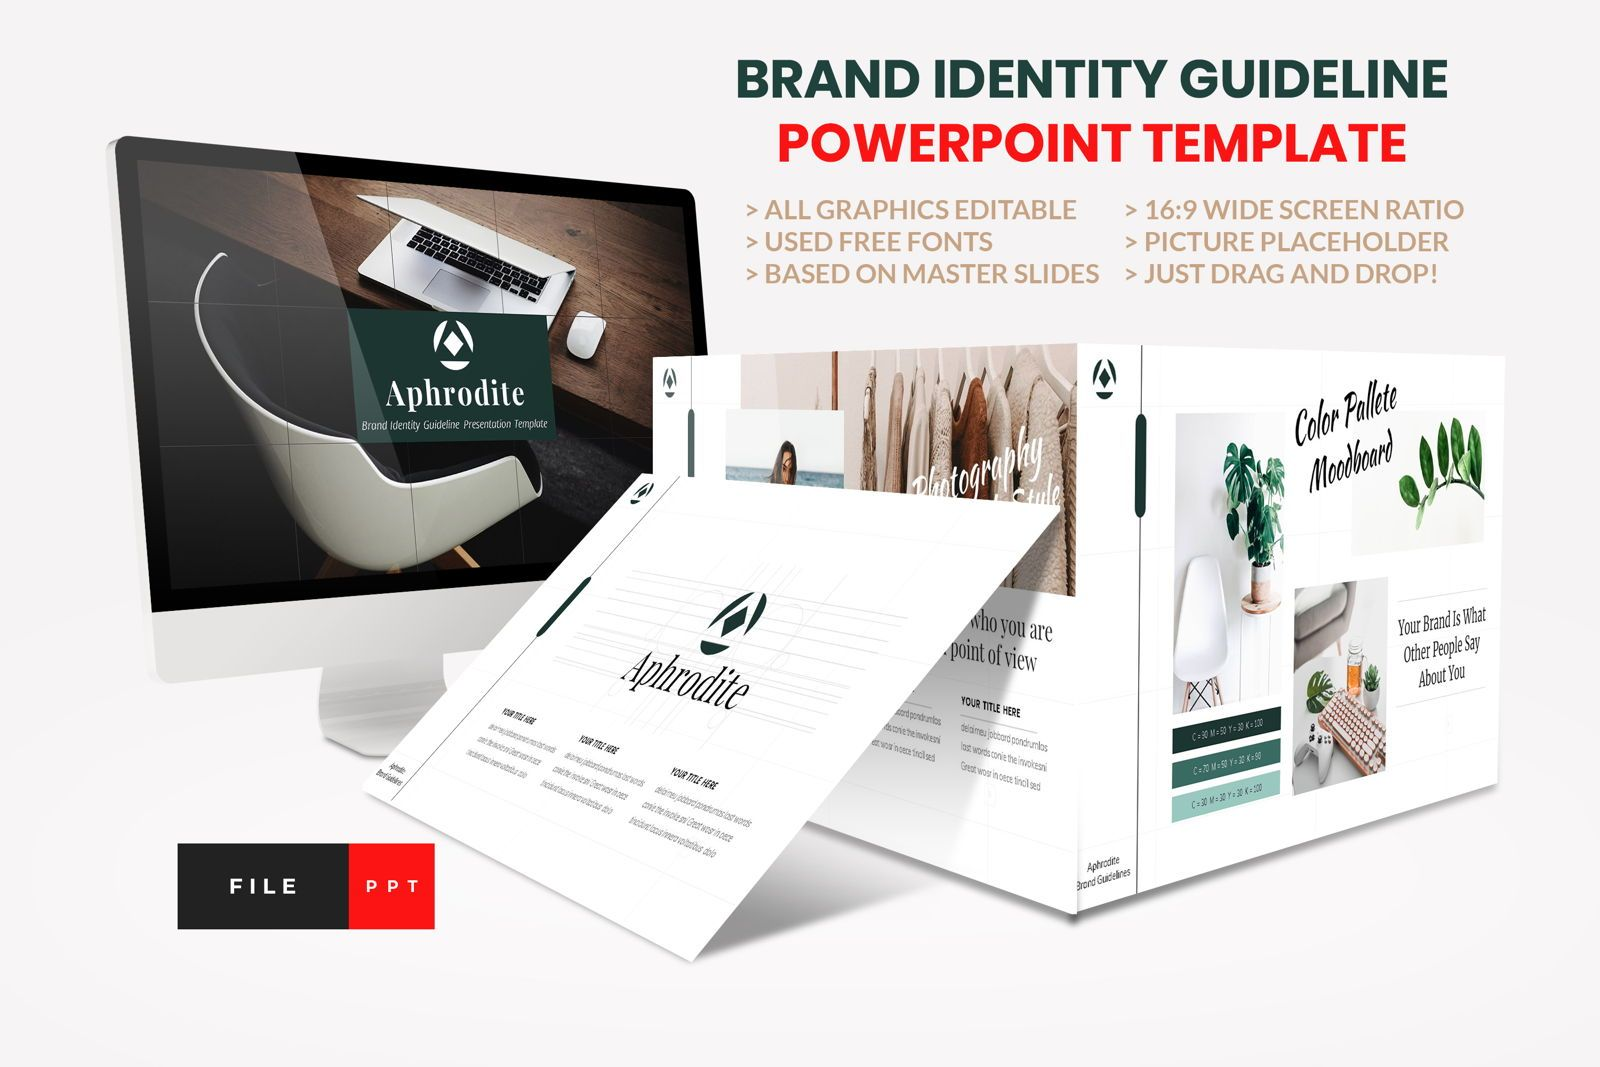 Brand Identity Guideline PowerPoint Template, 08594, Presentation Templates — PoweredTemplate.com